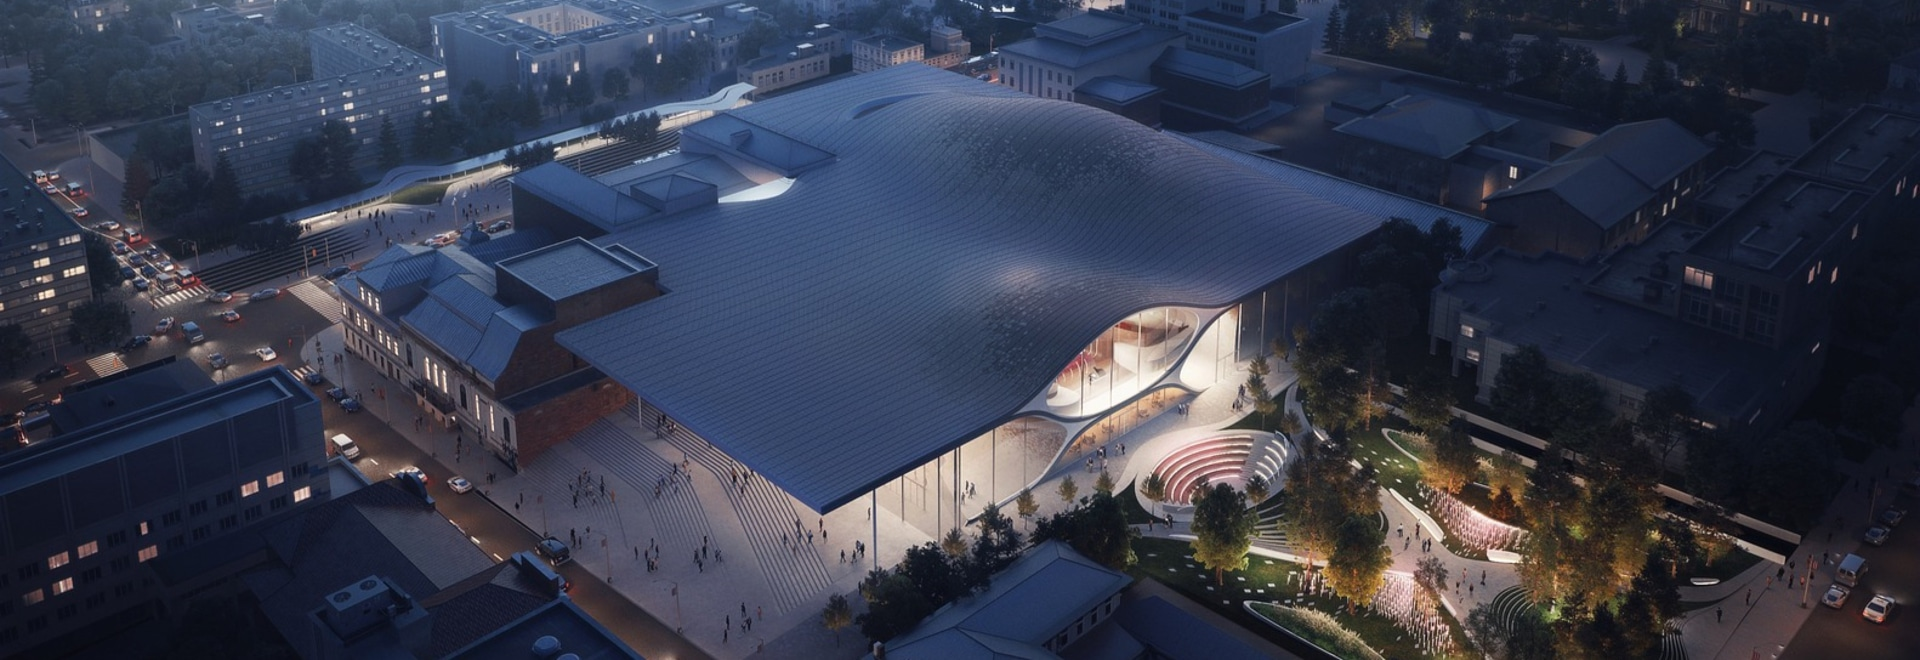 zaha hadid architects to build soundwave-inspired philharmonic concert hall in russia